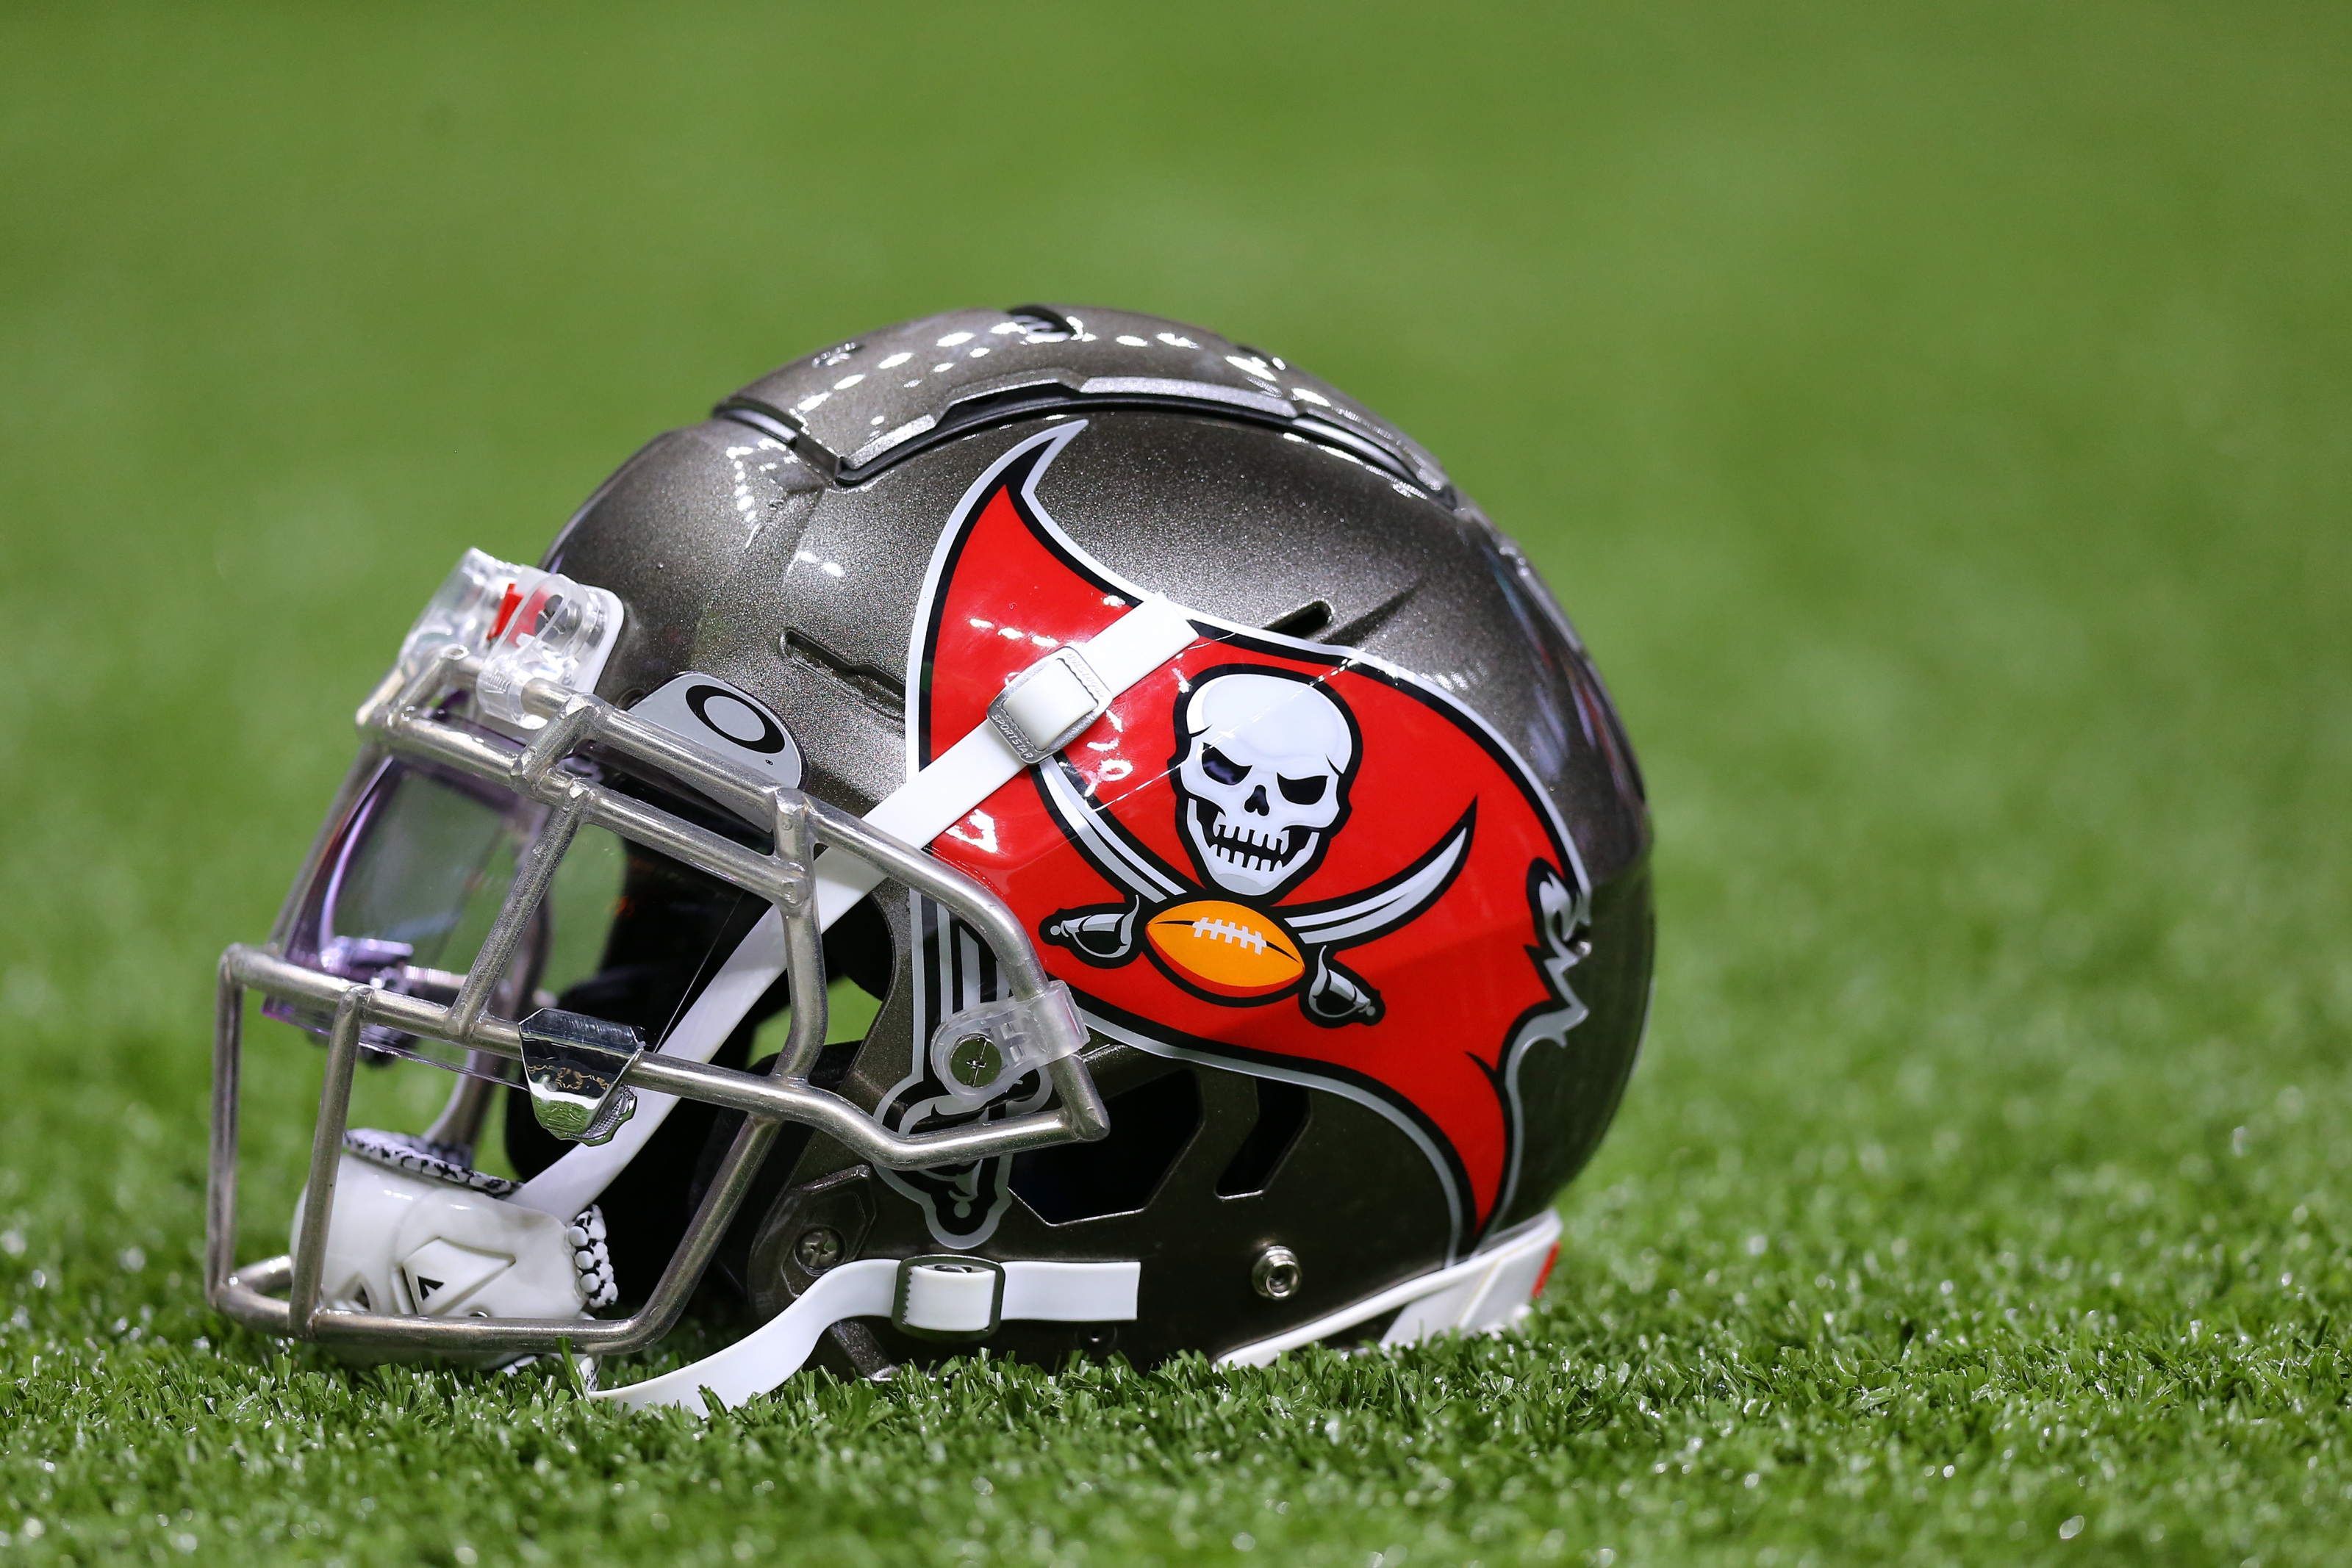 everything we know about the buccaneers new uniform release today the union journal https theunionjournal com everything we know about the buccaneers new uniform release today